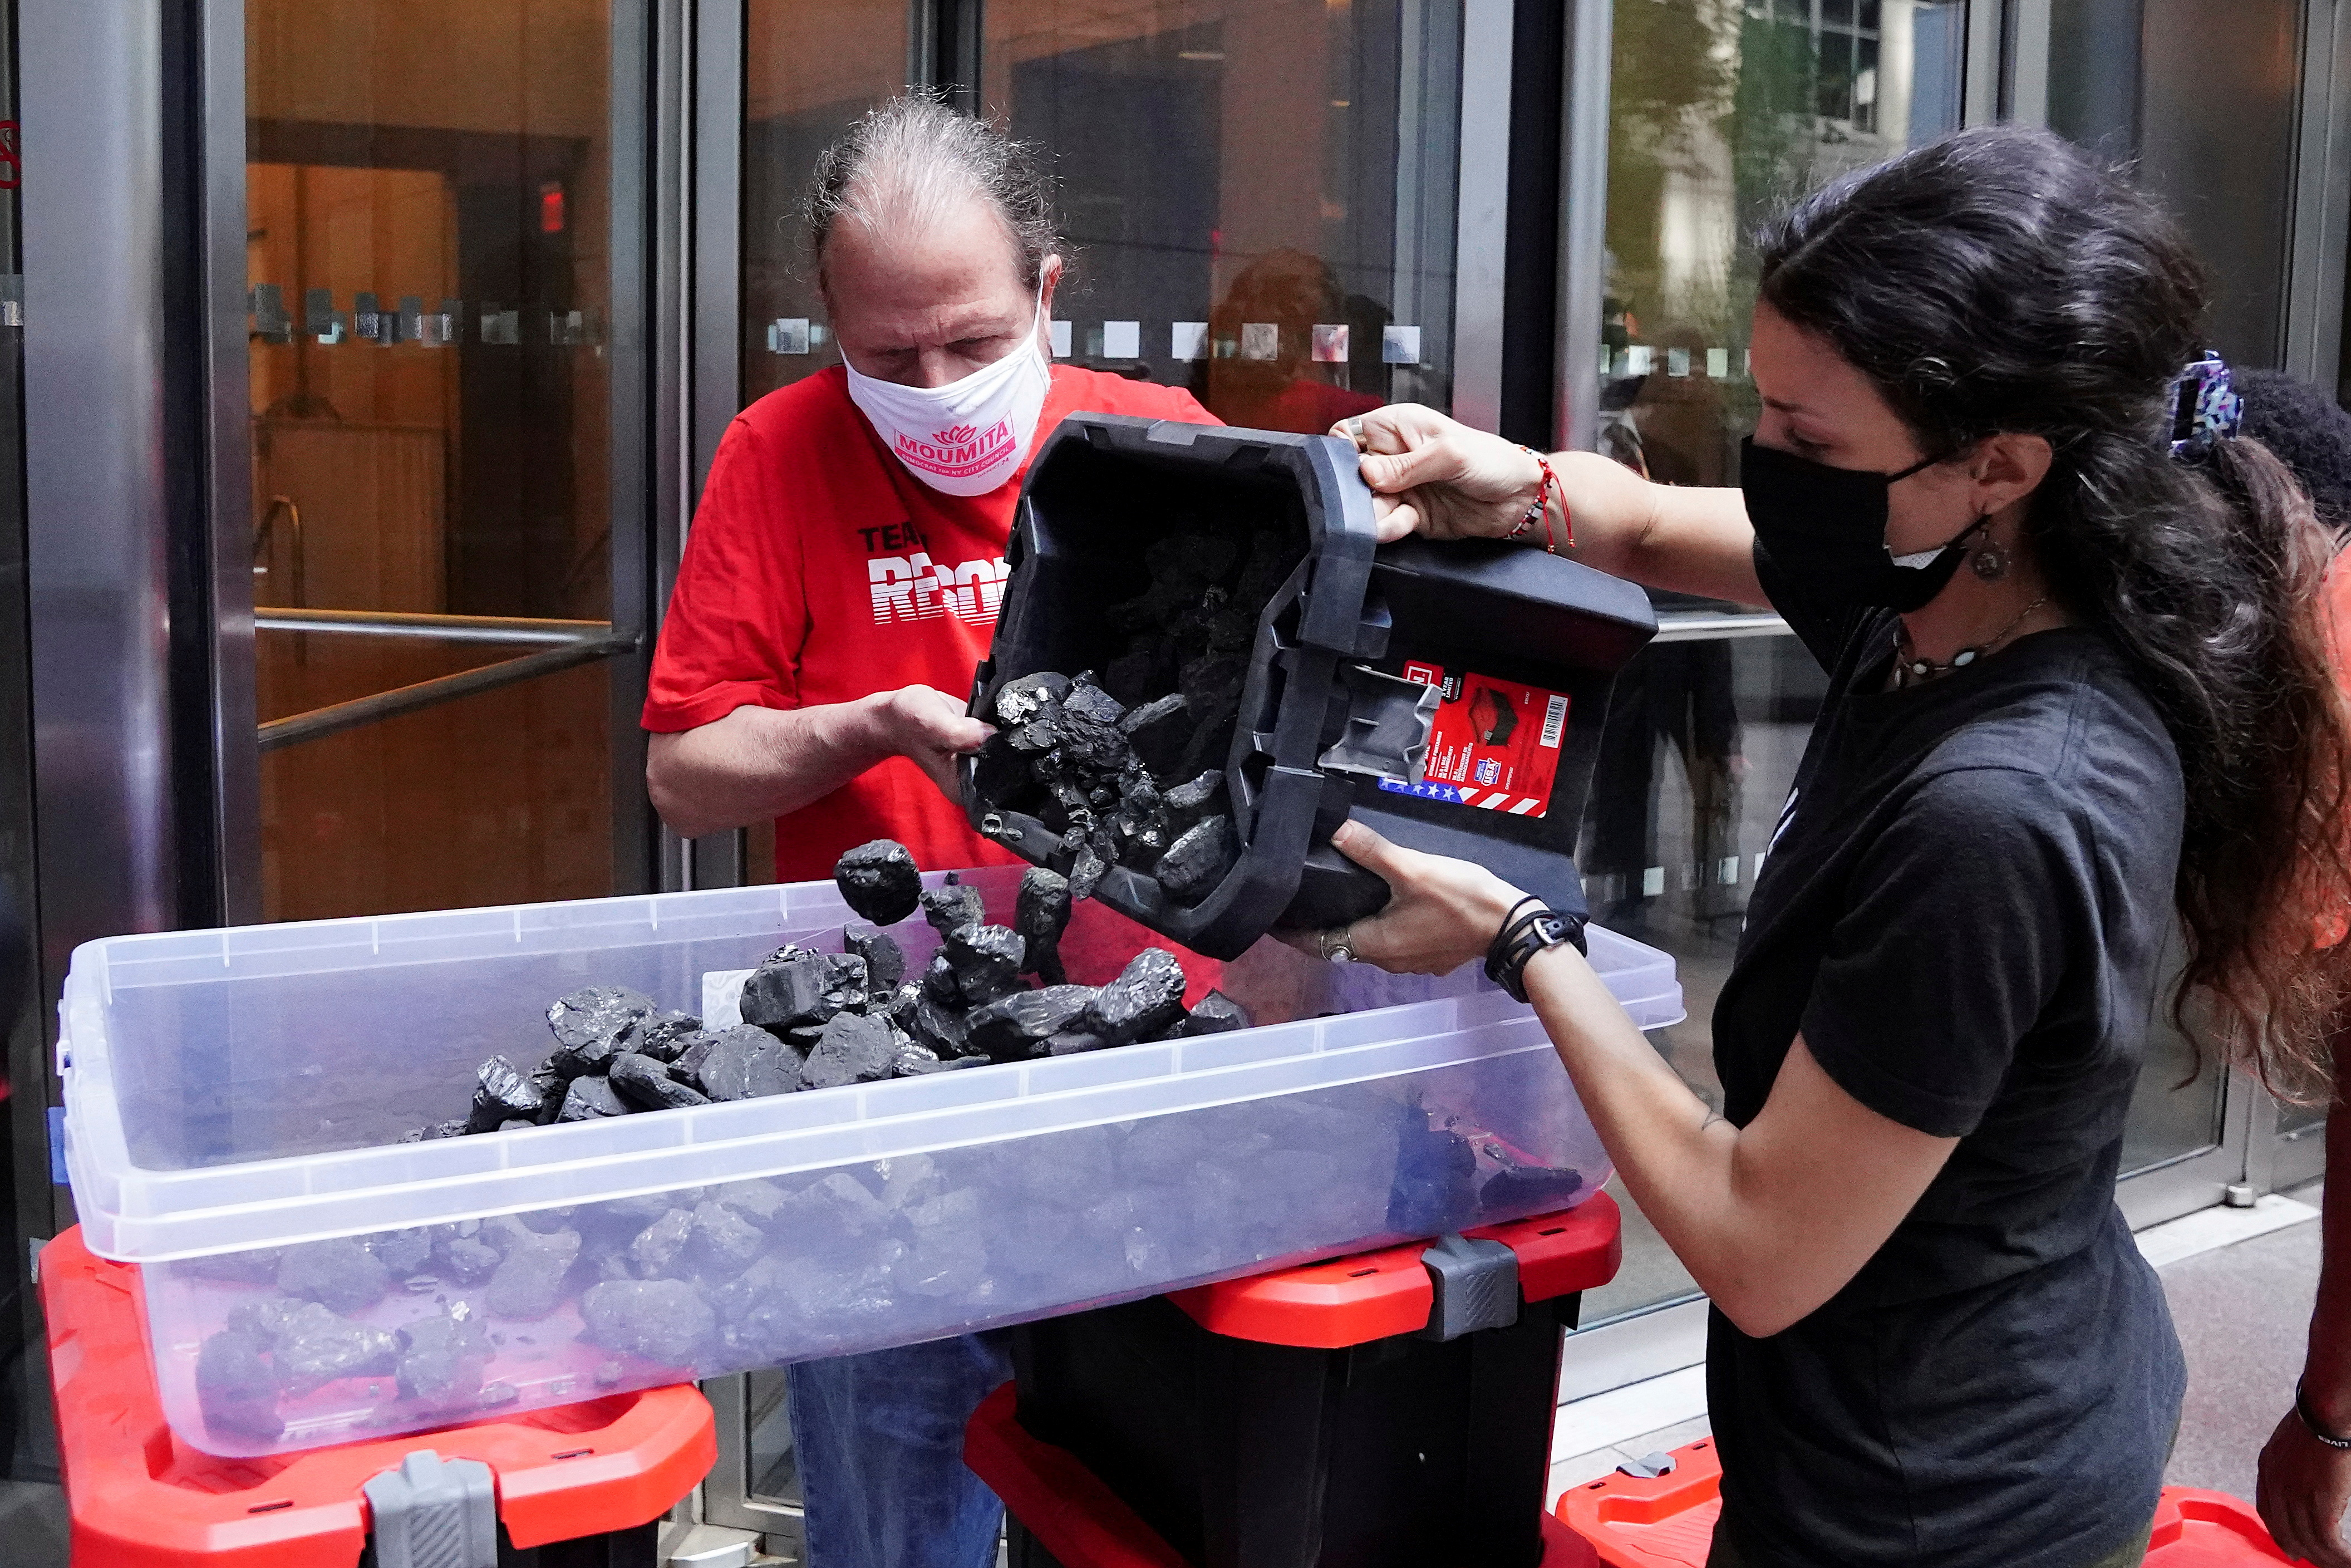 People put coal in a container as they protest against BlackRock investing in coal and tar sands by blocking their front door with coal at their headquarters in the Manhattan borough of New York City, New York, U.S., May 25, 2021.  REUTERS/Carlo Allegri/File Photo